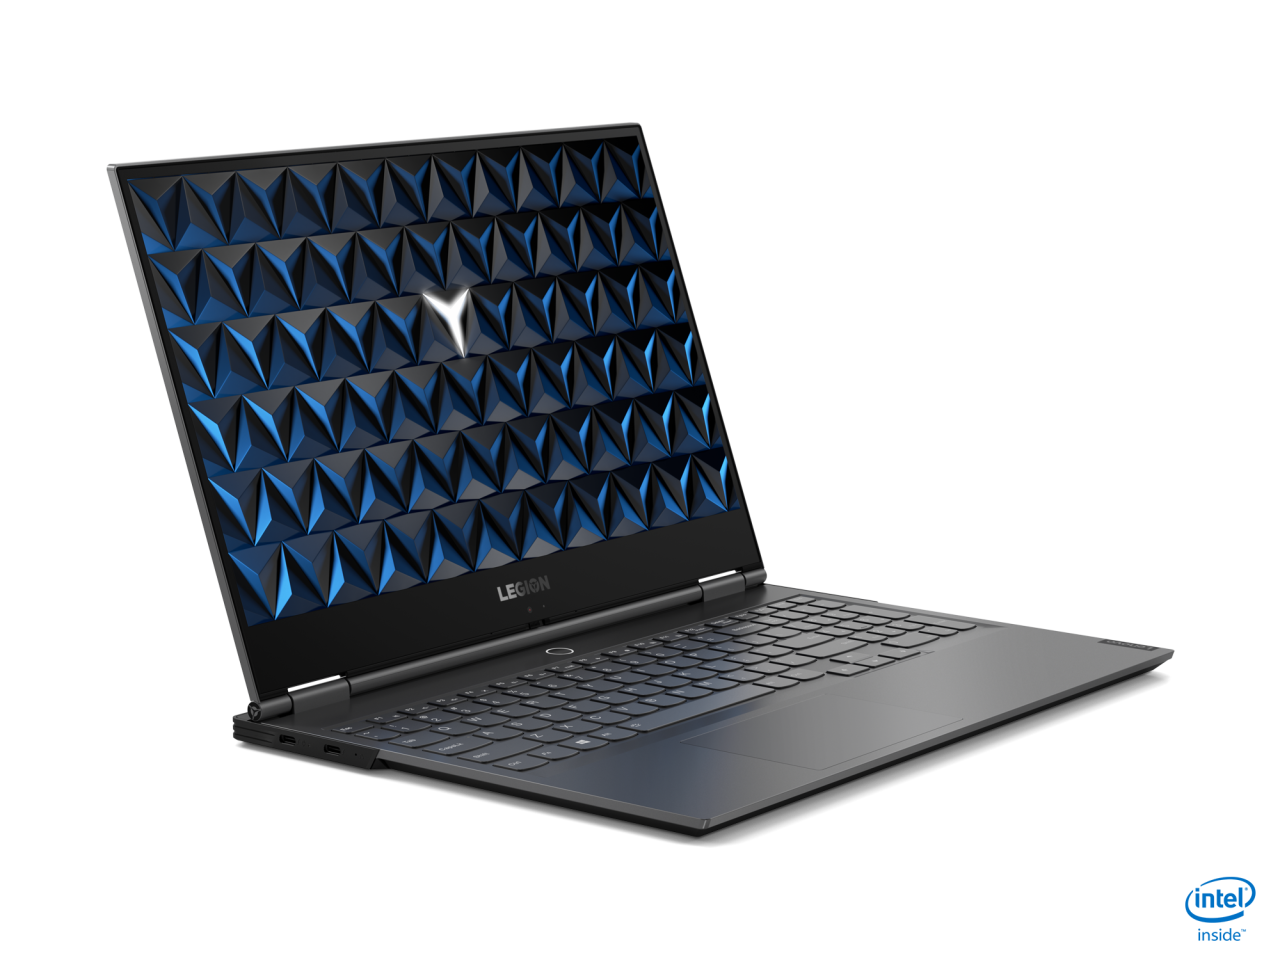 The thinnest and lightest of the new Legion gaming laptops is the Y740Si, measuring 14.9 mm thin and weighing 1.7 kg